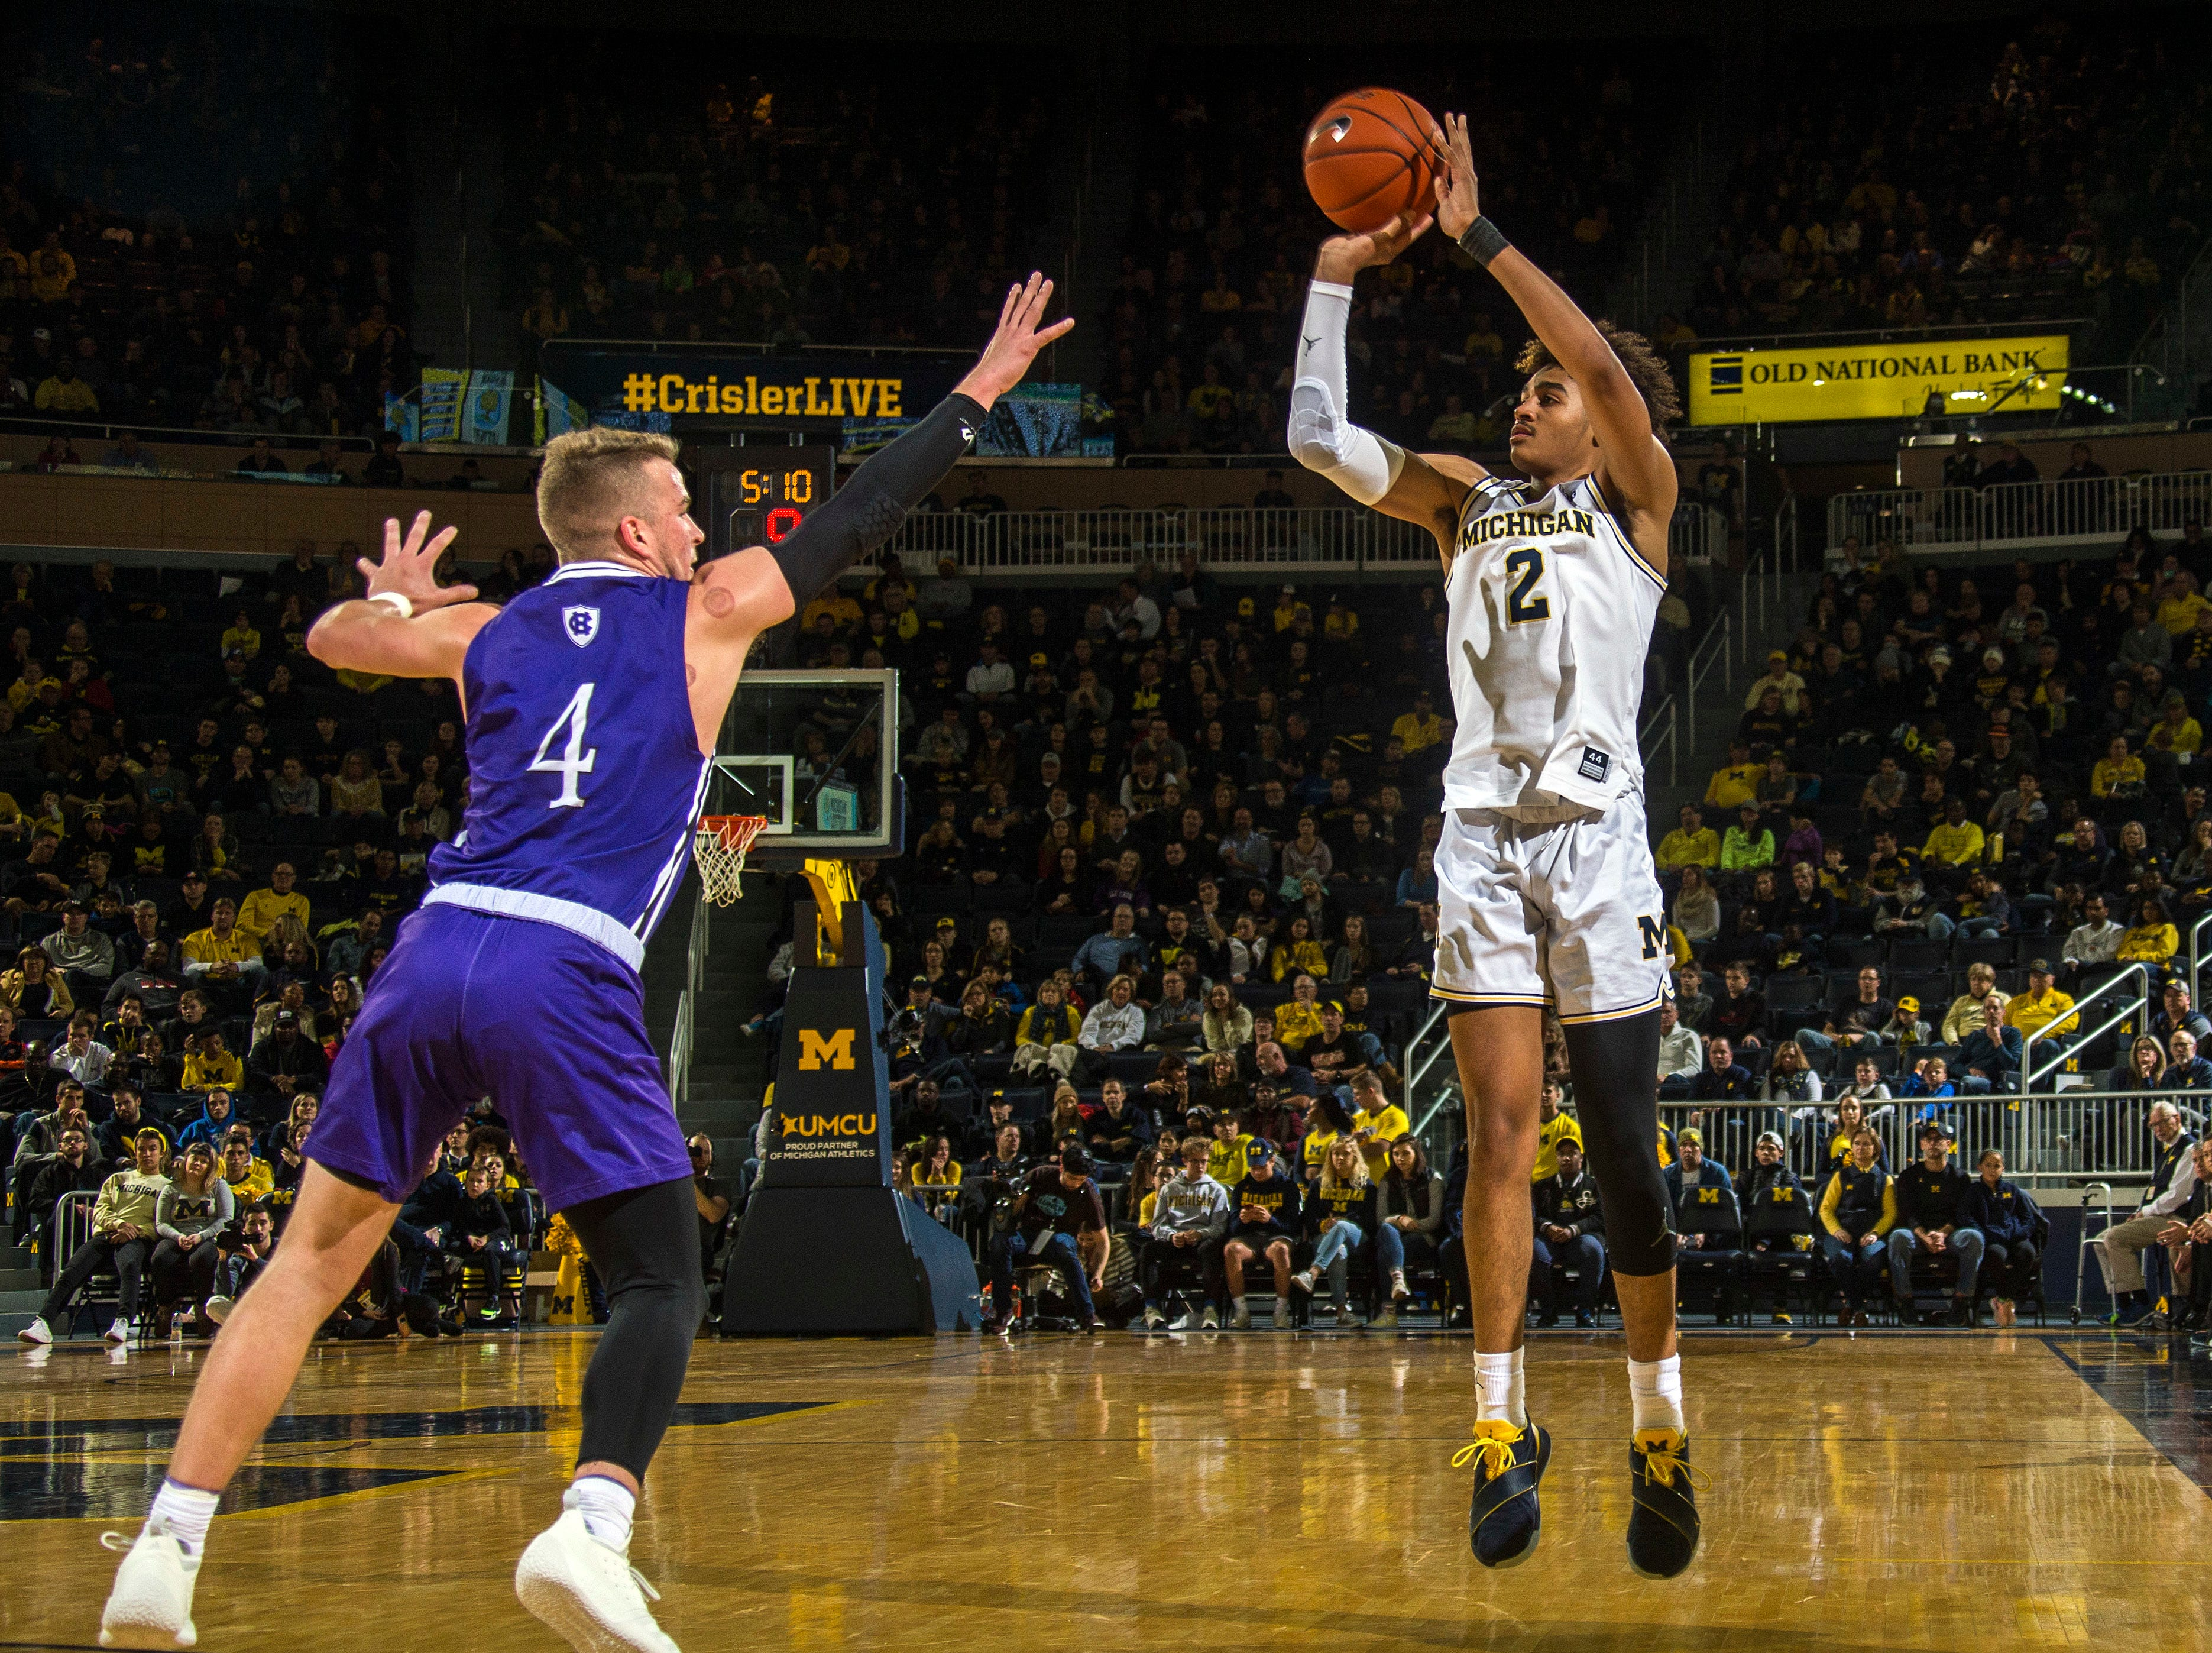 Holy Cross guard Austin Butler (4) defends a 3-point attempt from Michigan guard Jordan Poole (2) during the first half.